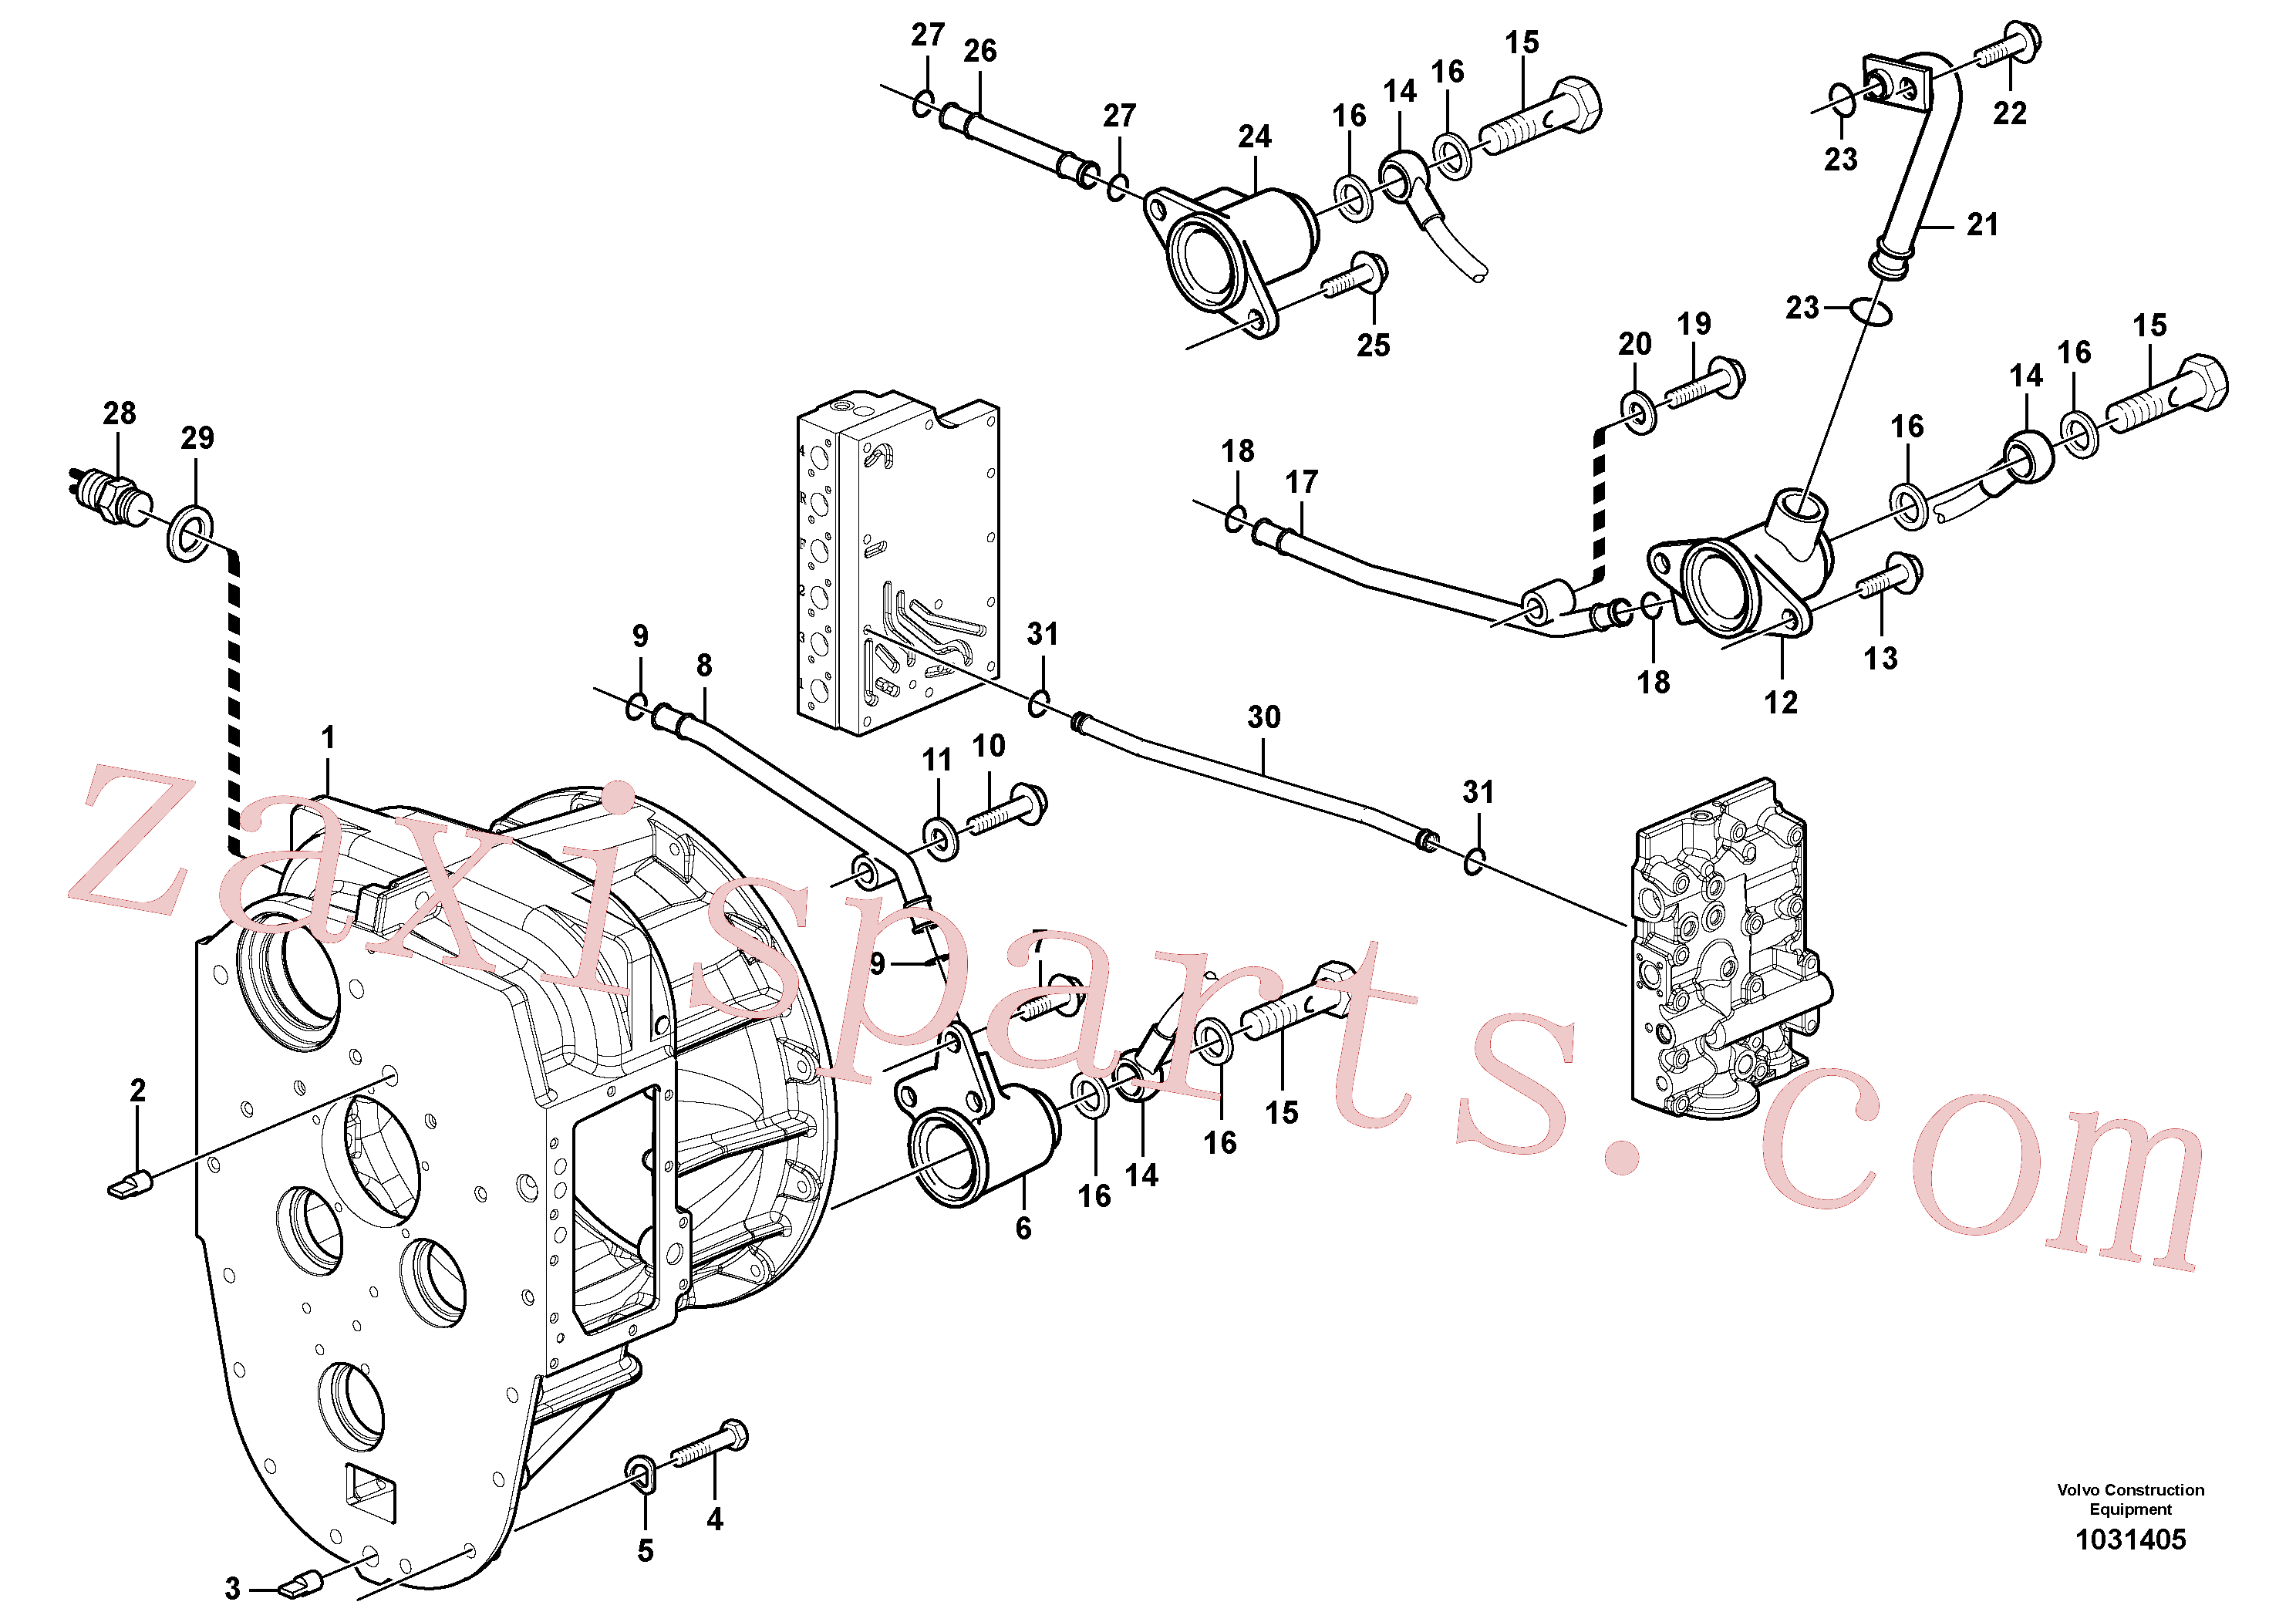 VOE984740 for Volvo Converter housing with fitting parts(1031405 assembly)